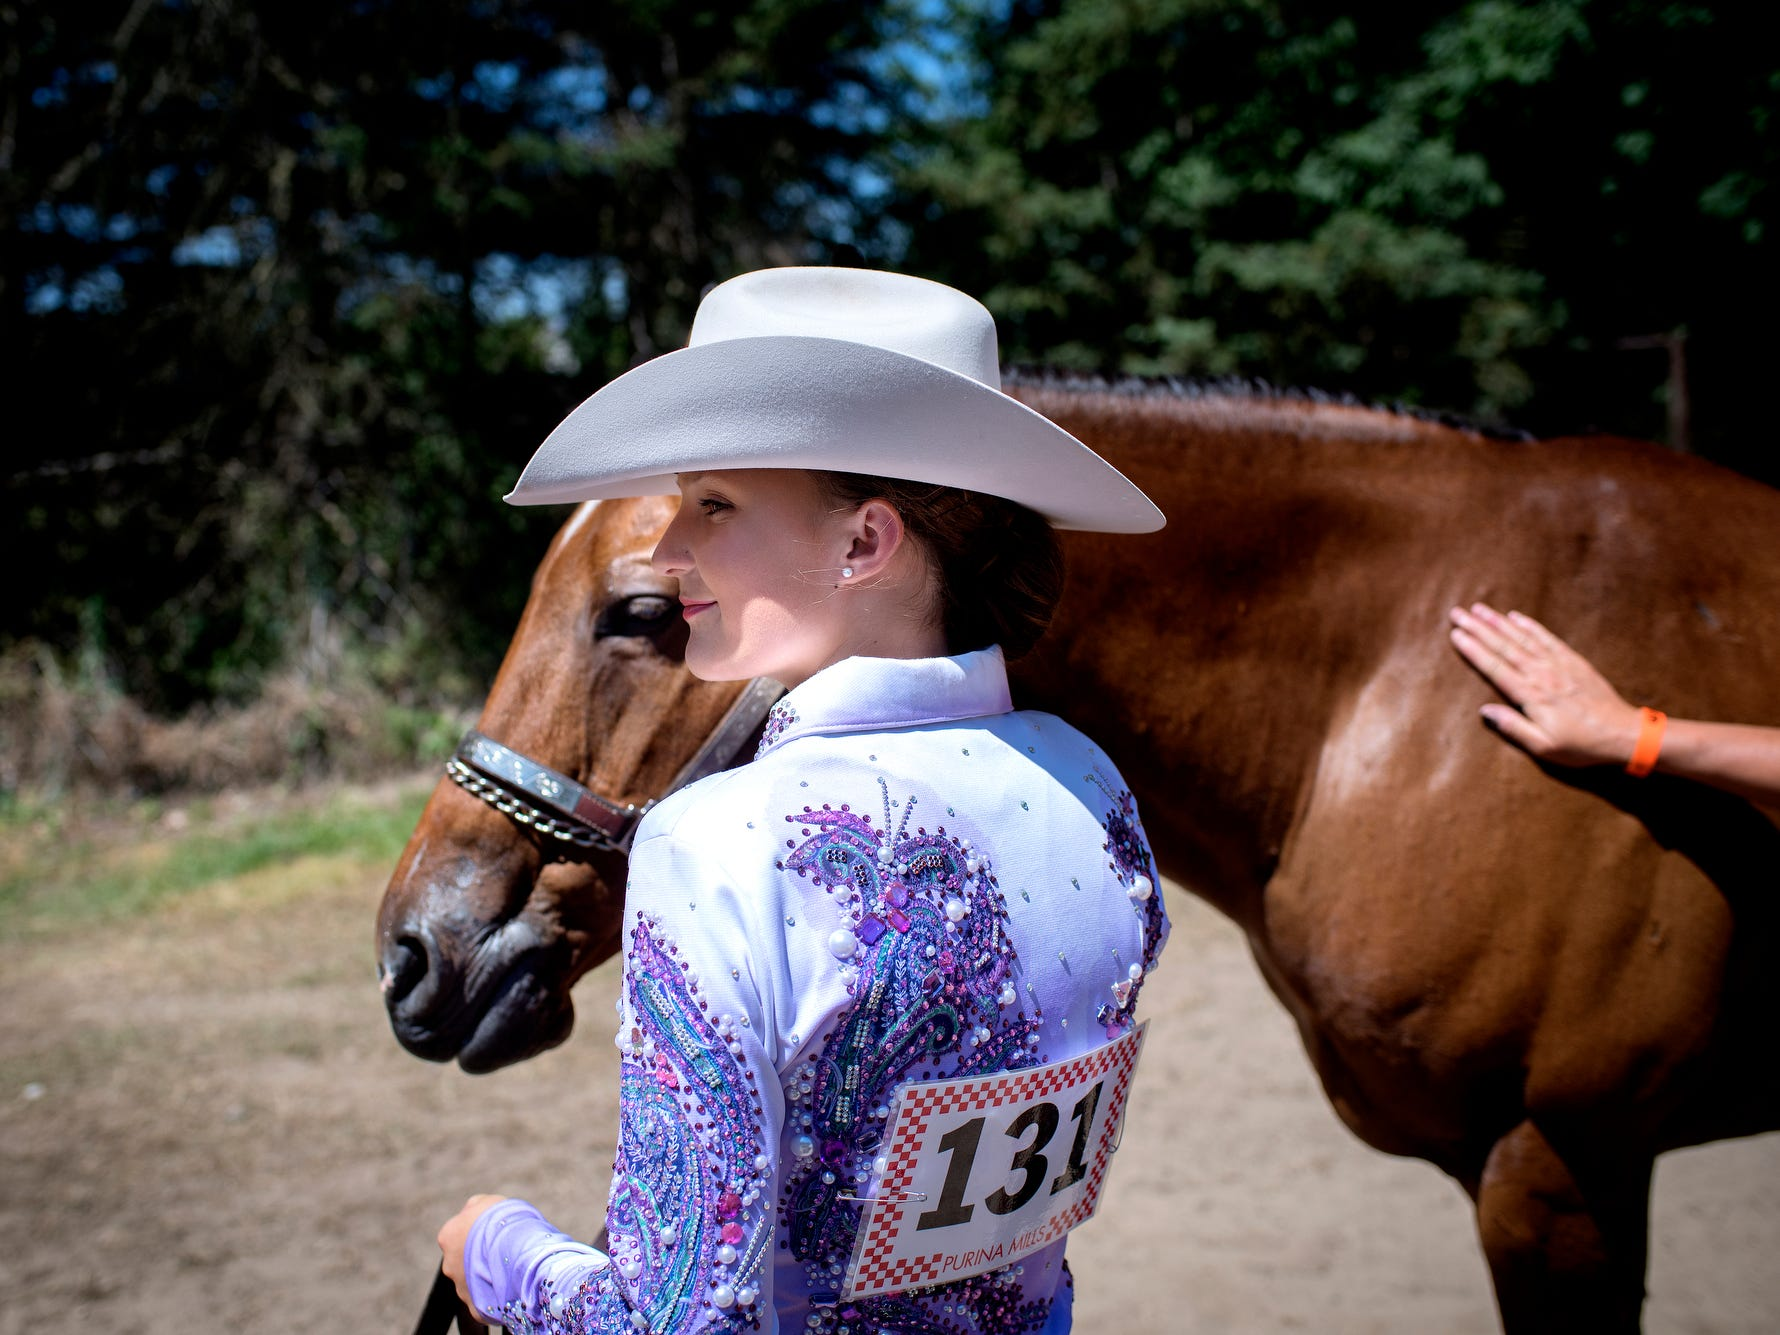 Eaton Rapids Middle School 8th-grader Lauren Malone stands with her 20-year-old quarter horse, Rudy, before competing in the 12 and under 4-H Horse Showmanship event at the Eaton County Fair on Monday, July 9, 2018, in Charlotte. Malone belongs to the Eaton Equestrians 4-H Club. The Eaton County Fair, which  runs July 9-14, features carnival rides, live entertainment, demolition derby, horse races, tractor pulls, area Future Farmers of America competitions and agricultural events.